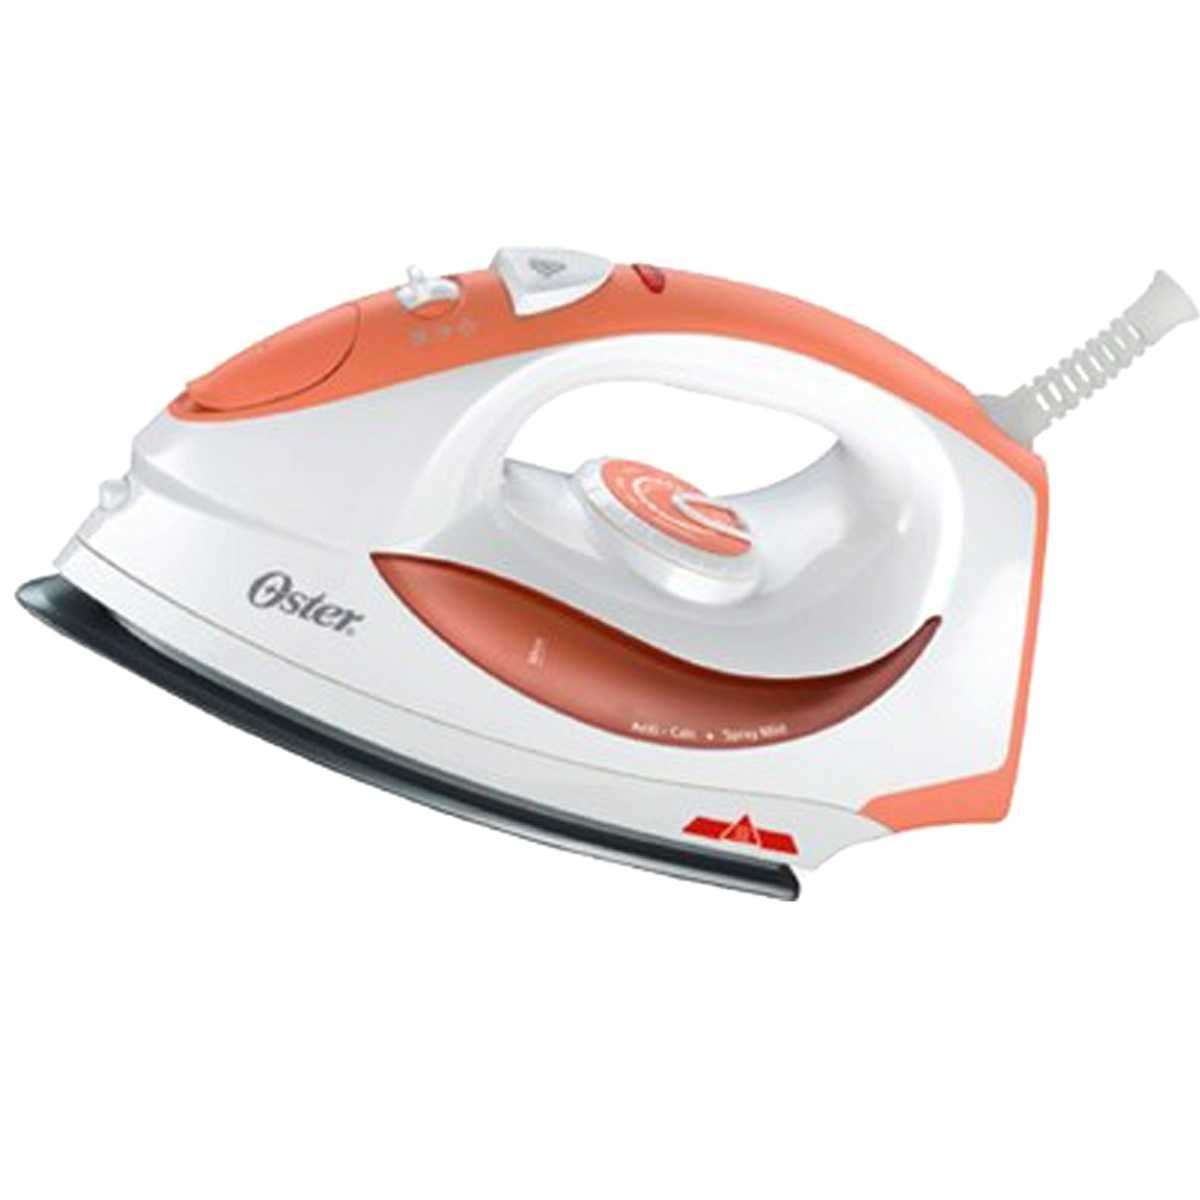 Picture of Oster Steam Iron 5804